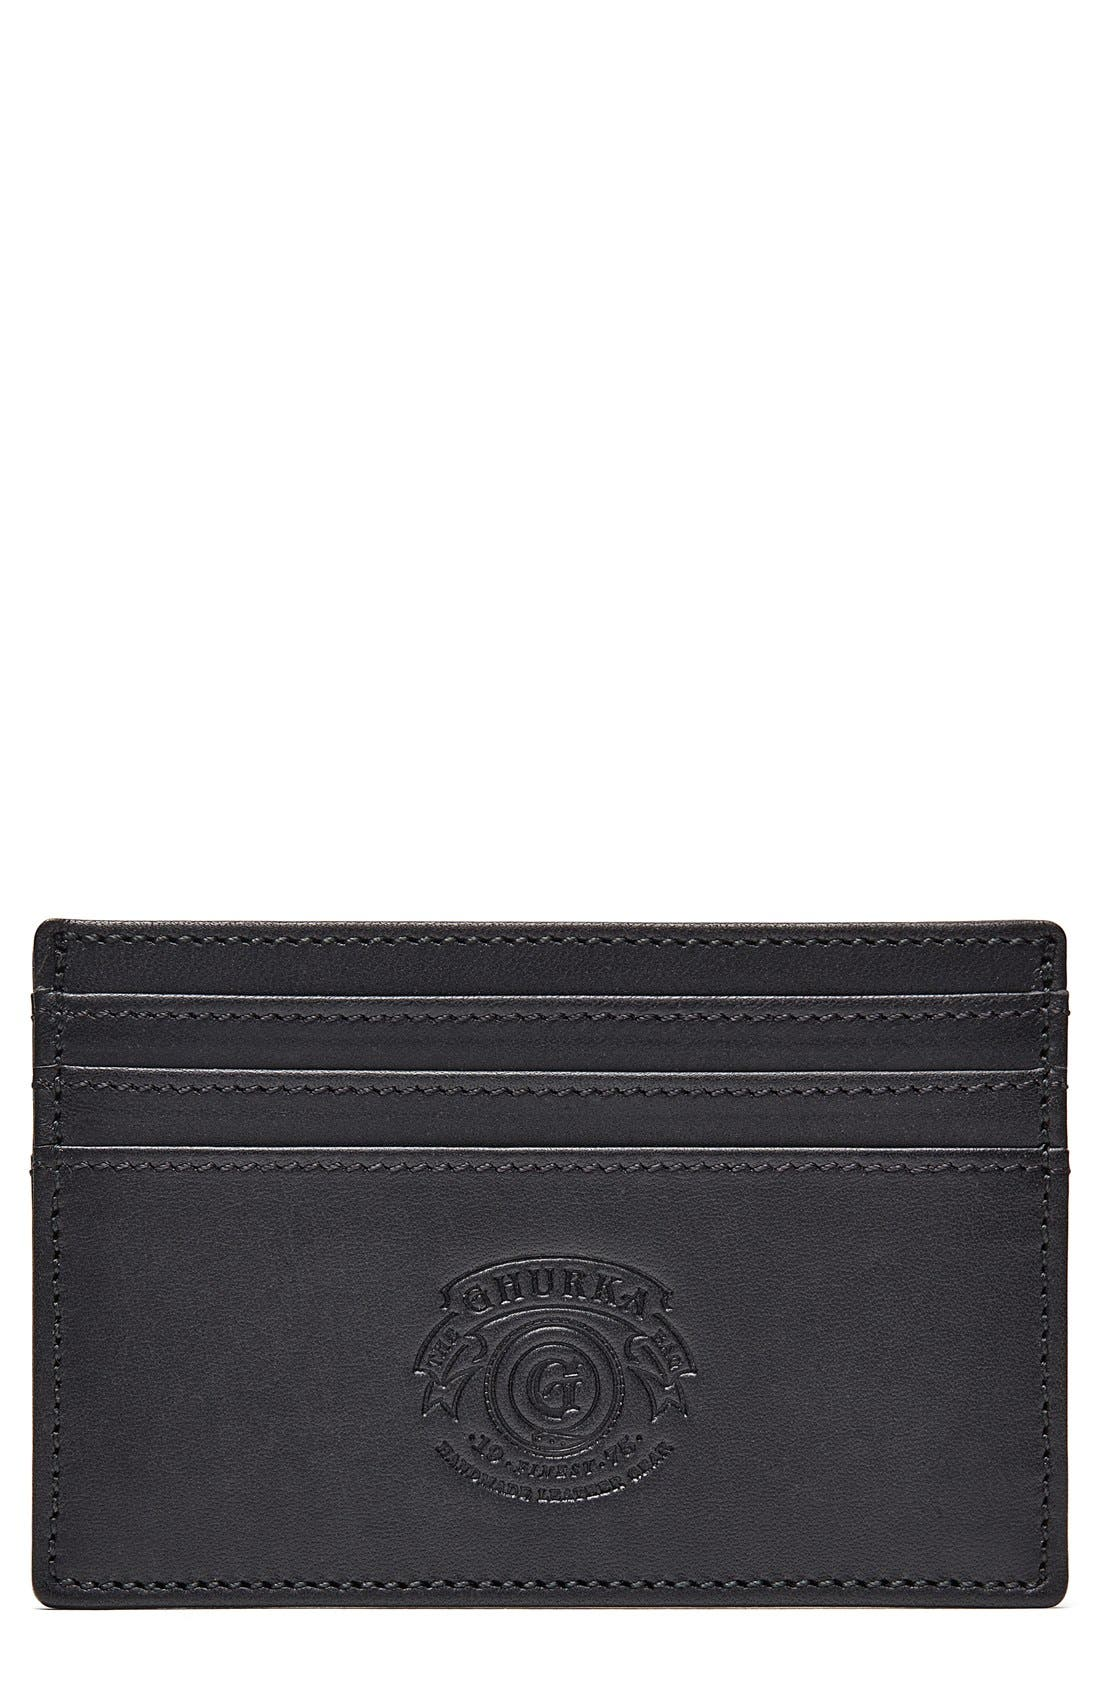 Alternate Image 1 Selected - Ghurka Leather Card Case